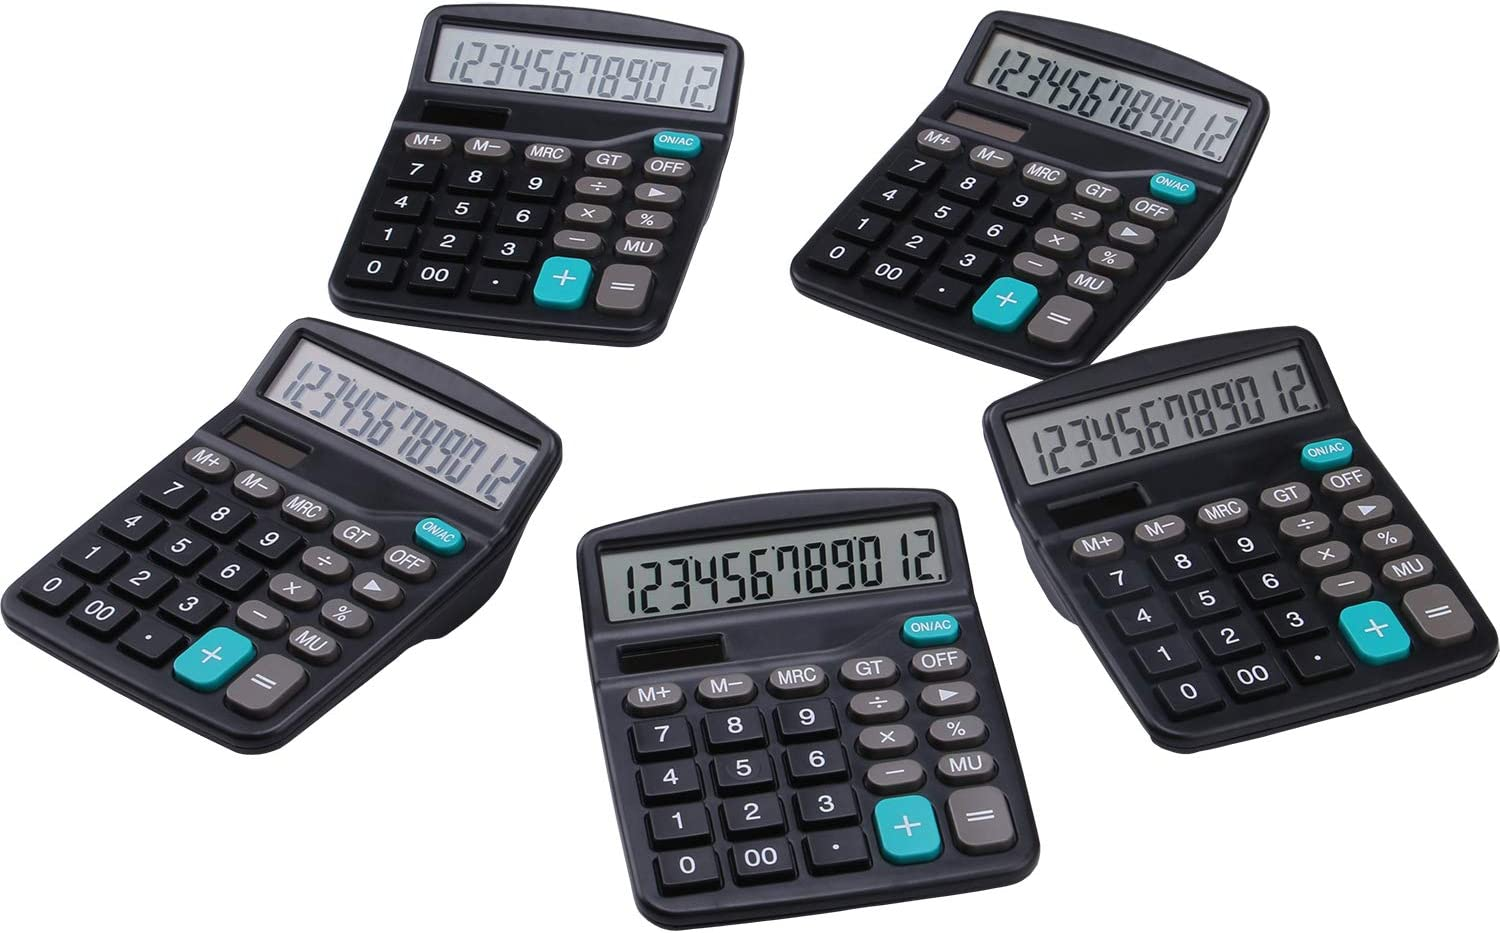 Calculator, Lichamp 5 Pack Calculators Large Display, Black Standard Function Desktop Basic Calculators with Dual Power Solar and AA Battery (Included)